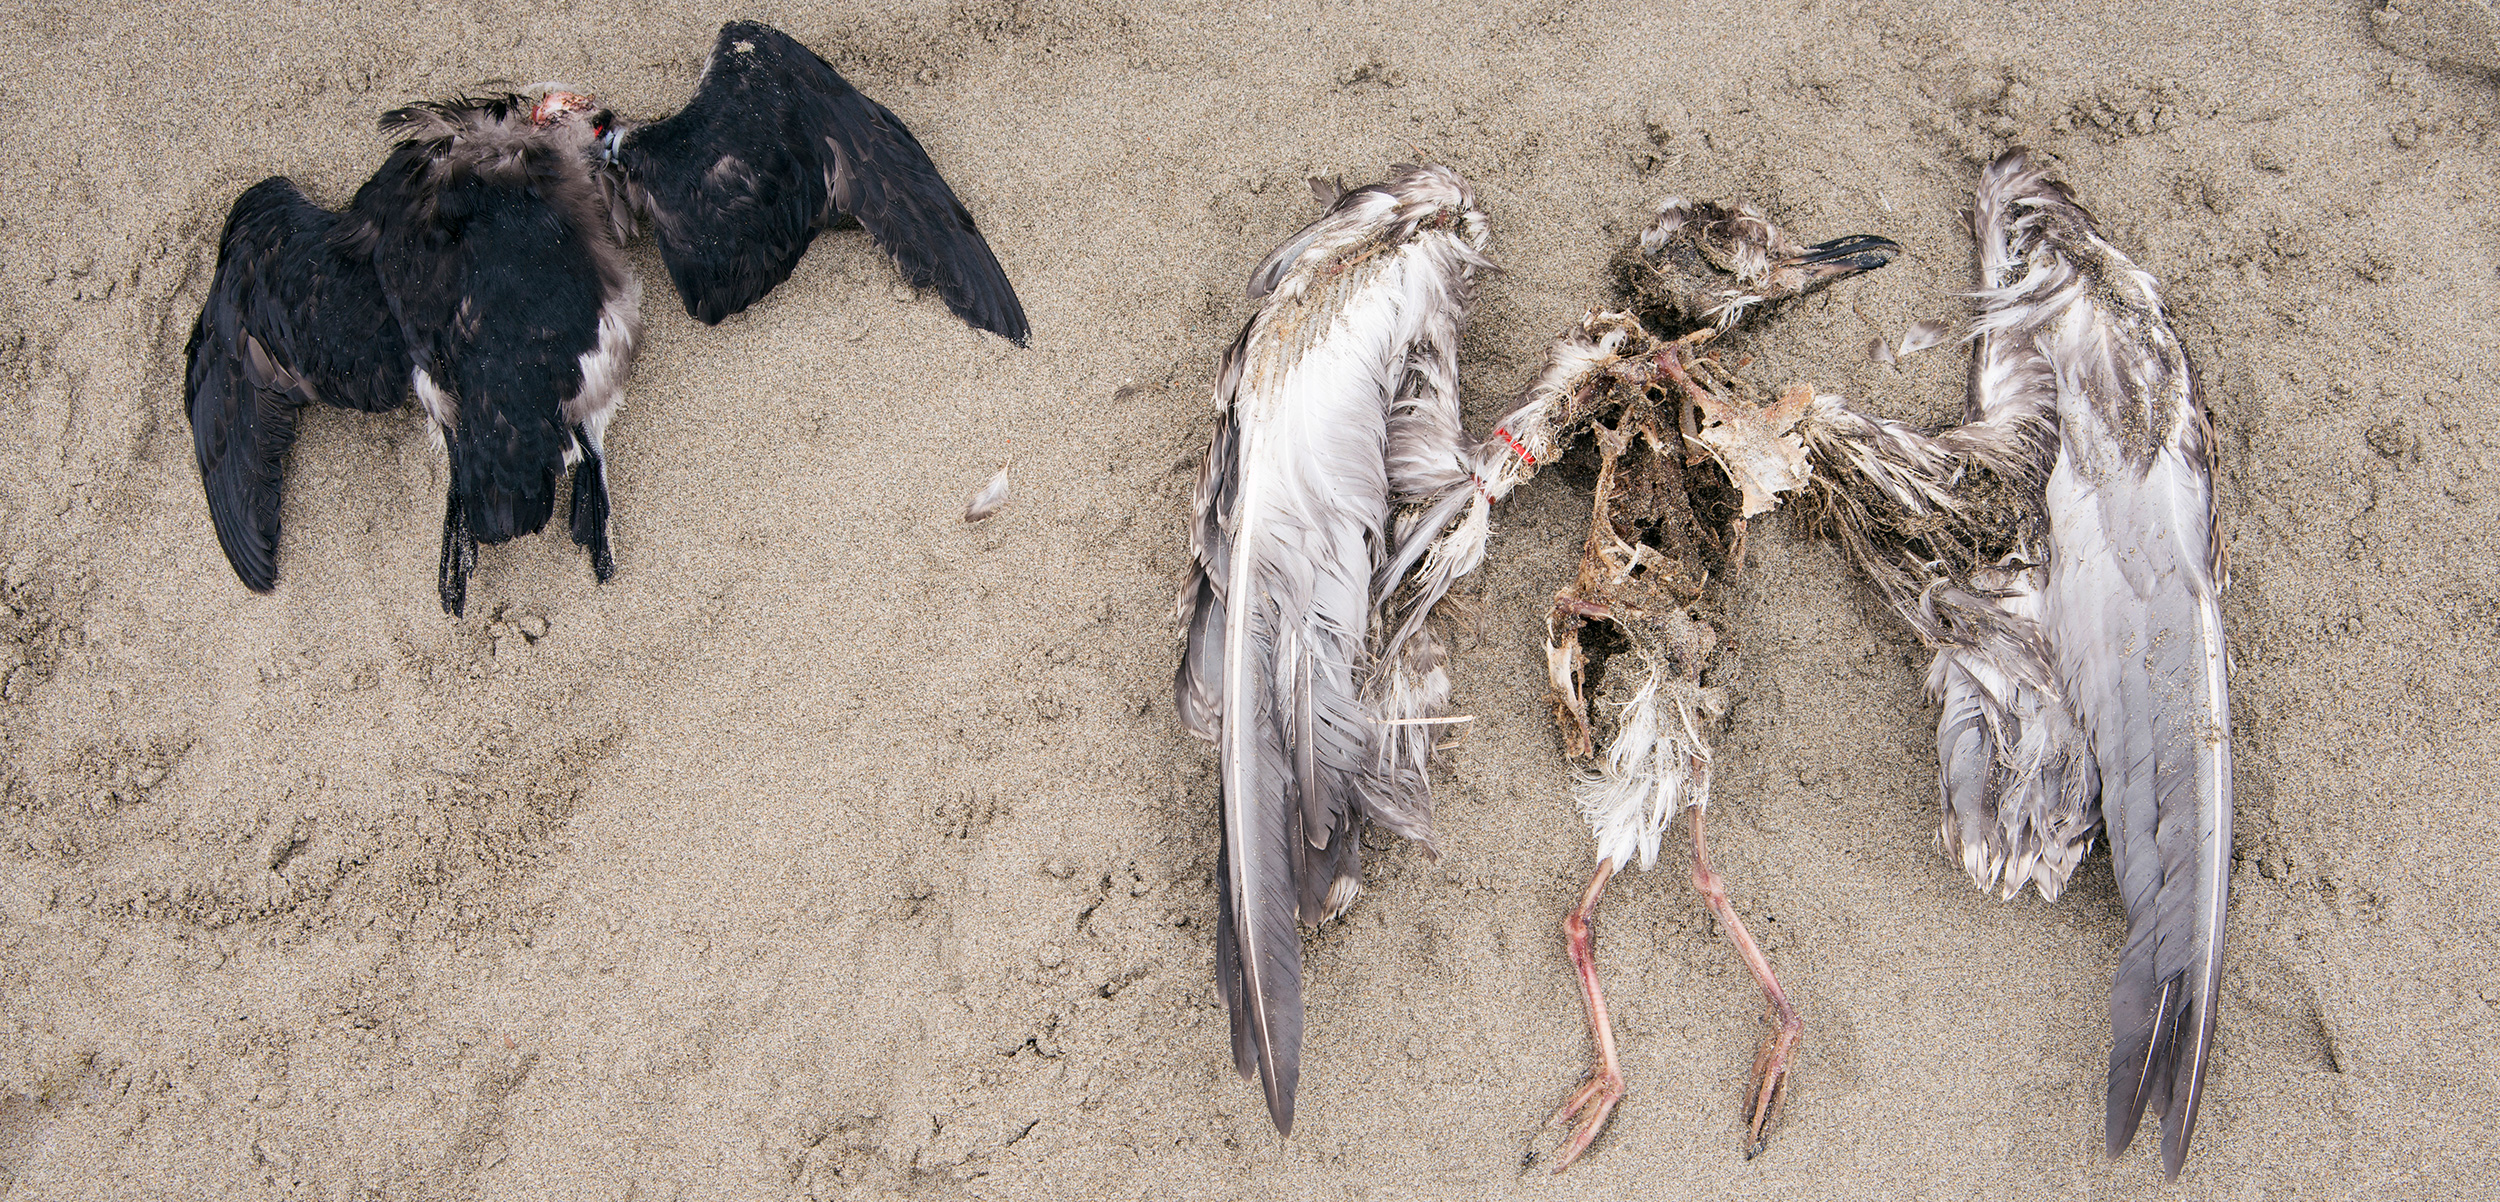 Volunteers on the Coastal Observation and Seabird Survey Team (COASST) regularly walk beaches from Alaska to Northern California in search of seabird casualties, such as this headless rhinoceros auklet (left) and immature gull of an undetermined species. Photo by Shanna Baker